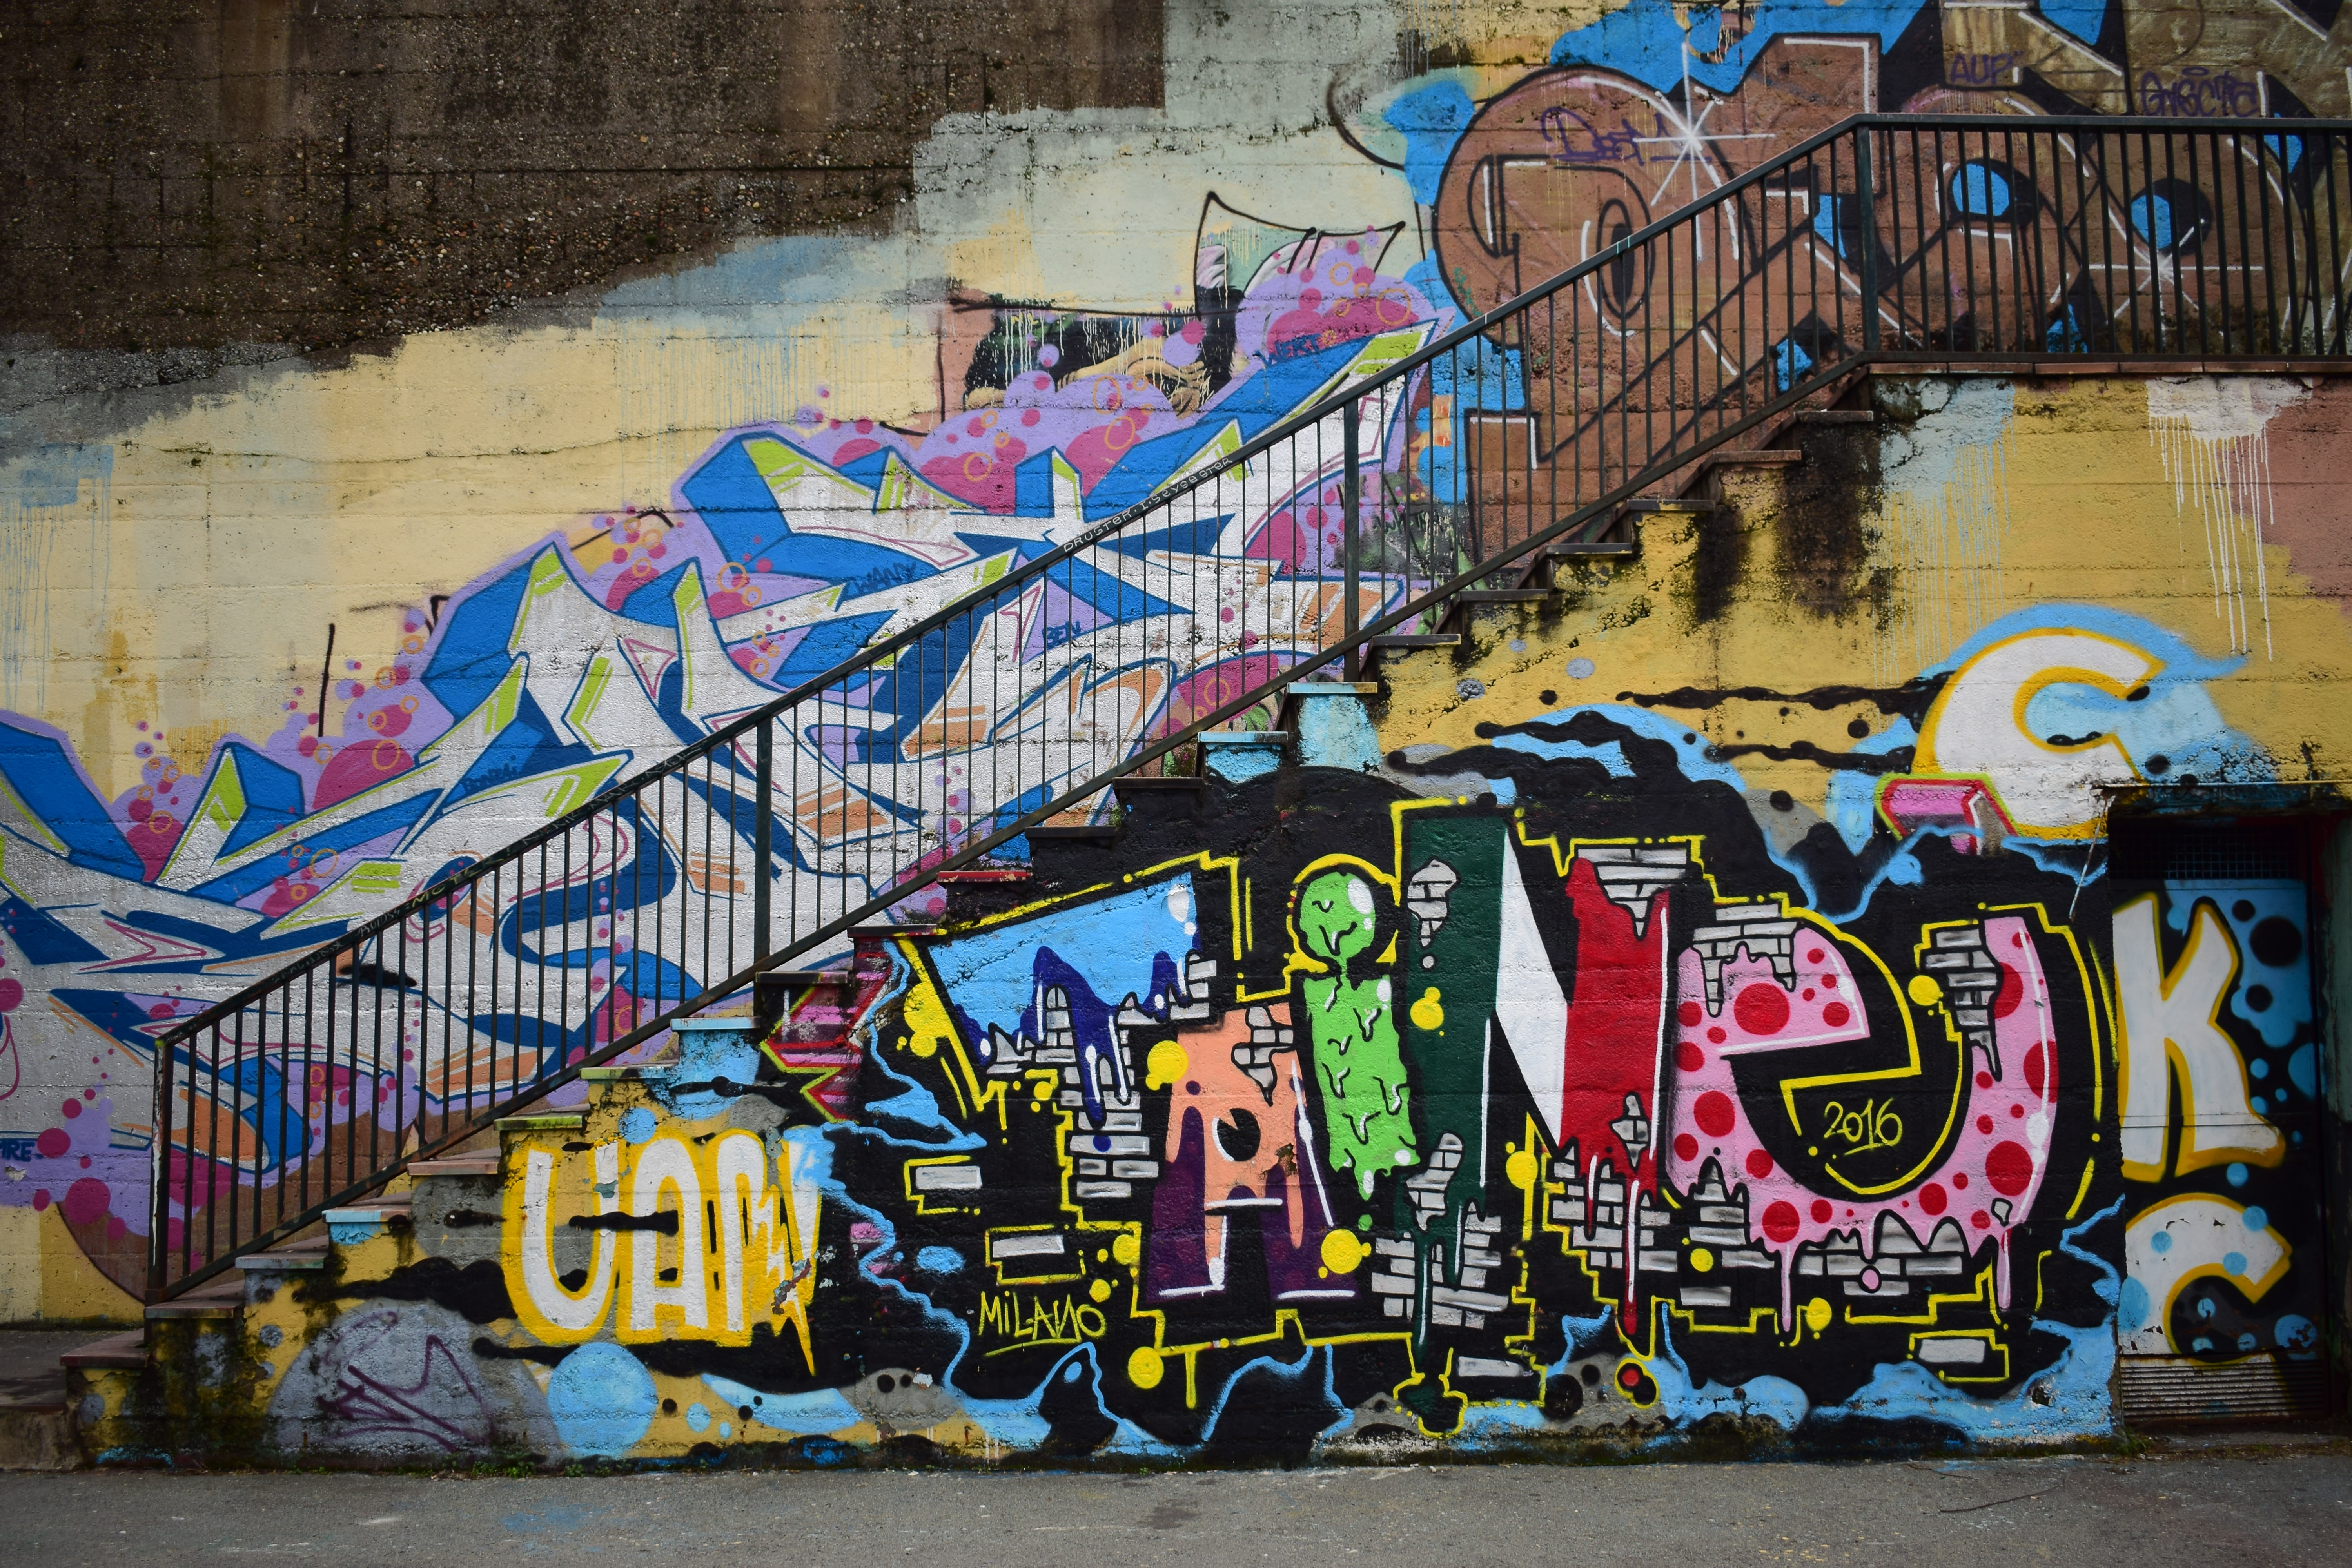 Urban stairs and railing with colorful grunge graffiti covered walls